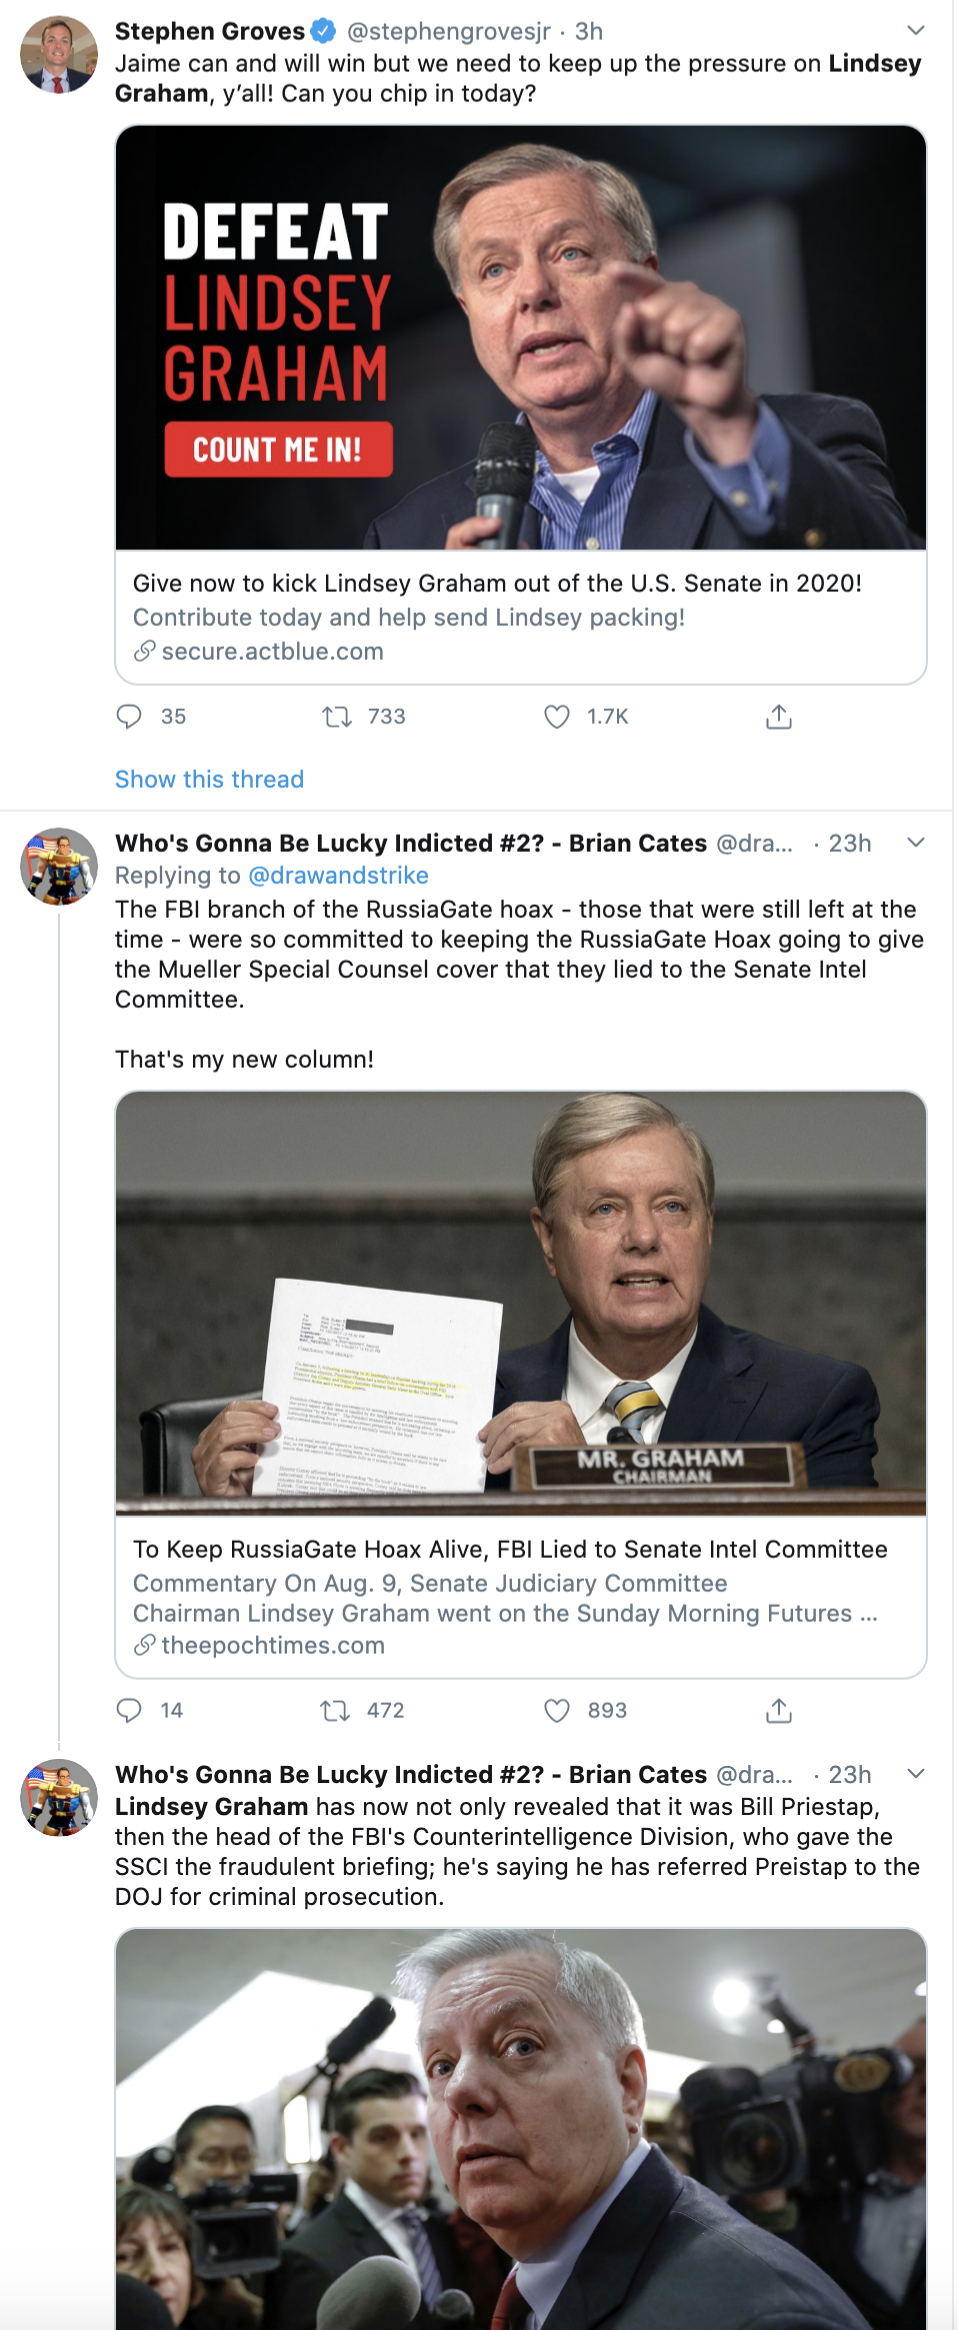 Screen-Shot-2020-08-17-at-11.13.38-AM Lindsey Graham's 2020 Re-Election Chances Take Major Blow Election 2020 Featured Politics Racism Top Stories